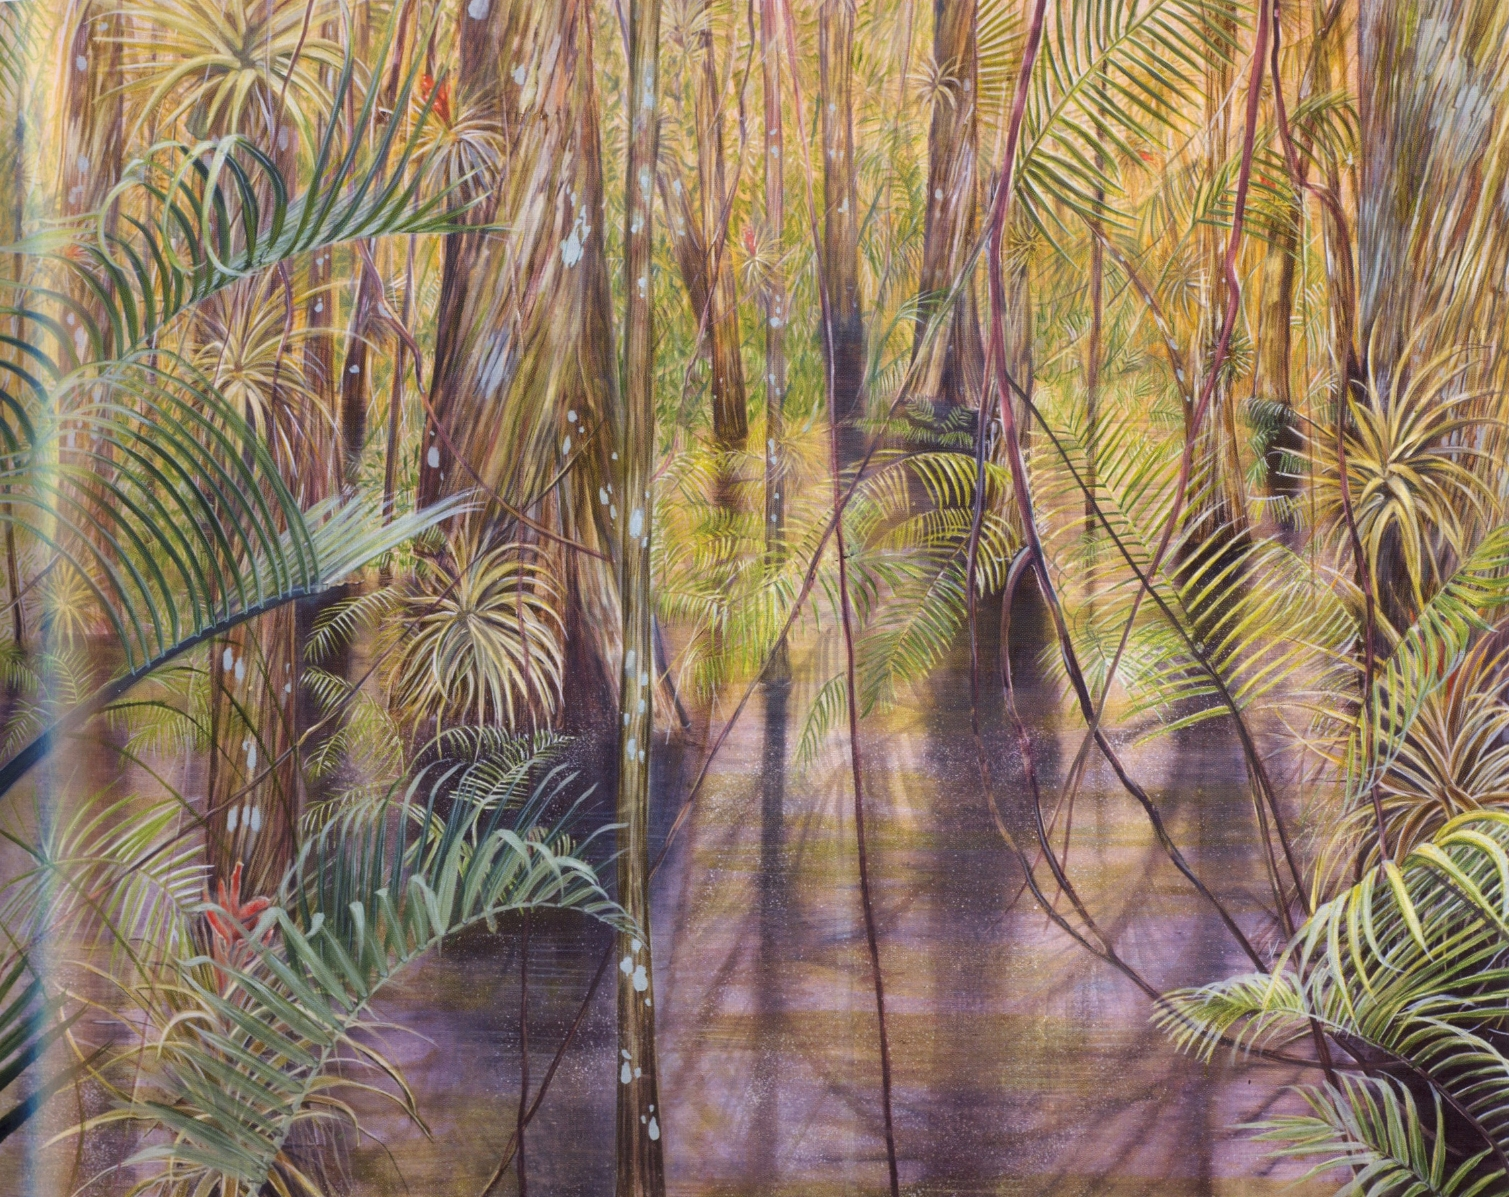 Cyprus Clearing   Oil on canvas, 48'' x 60'', 2004